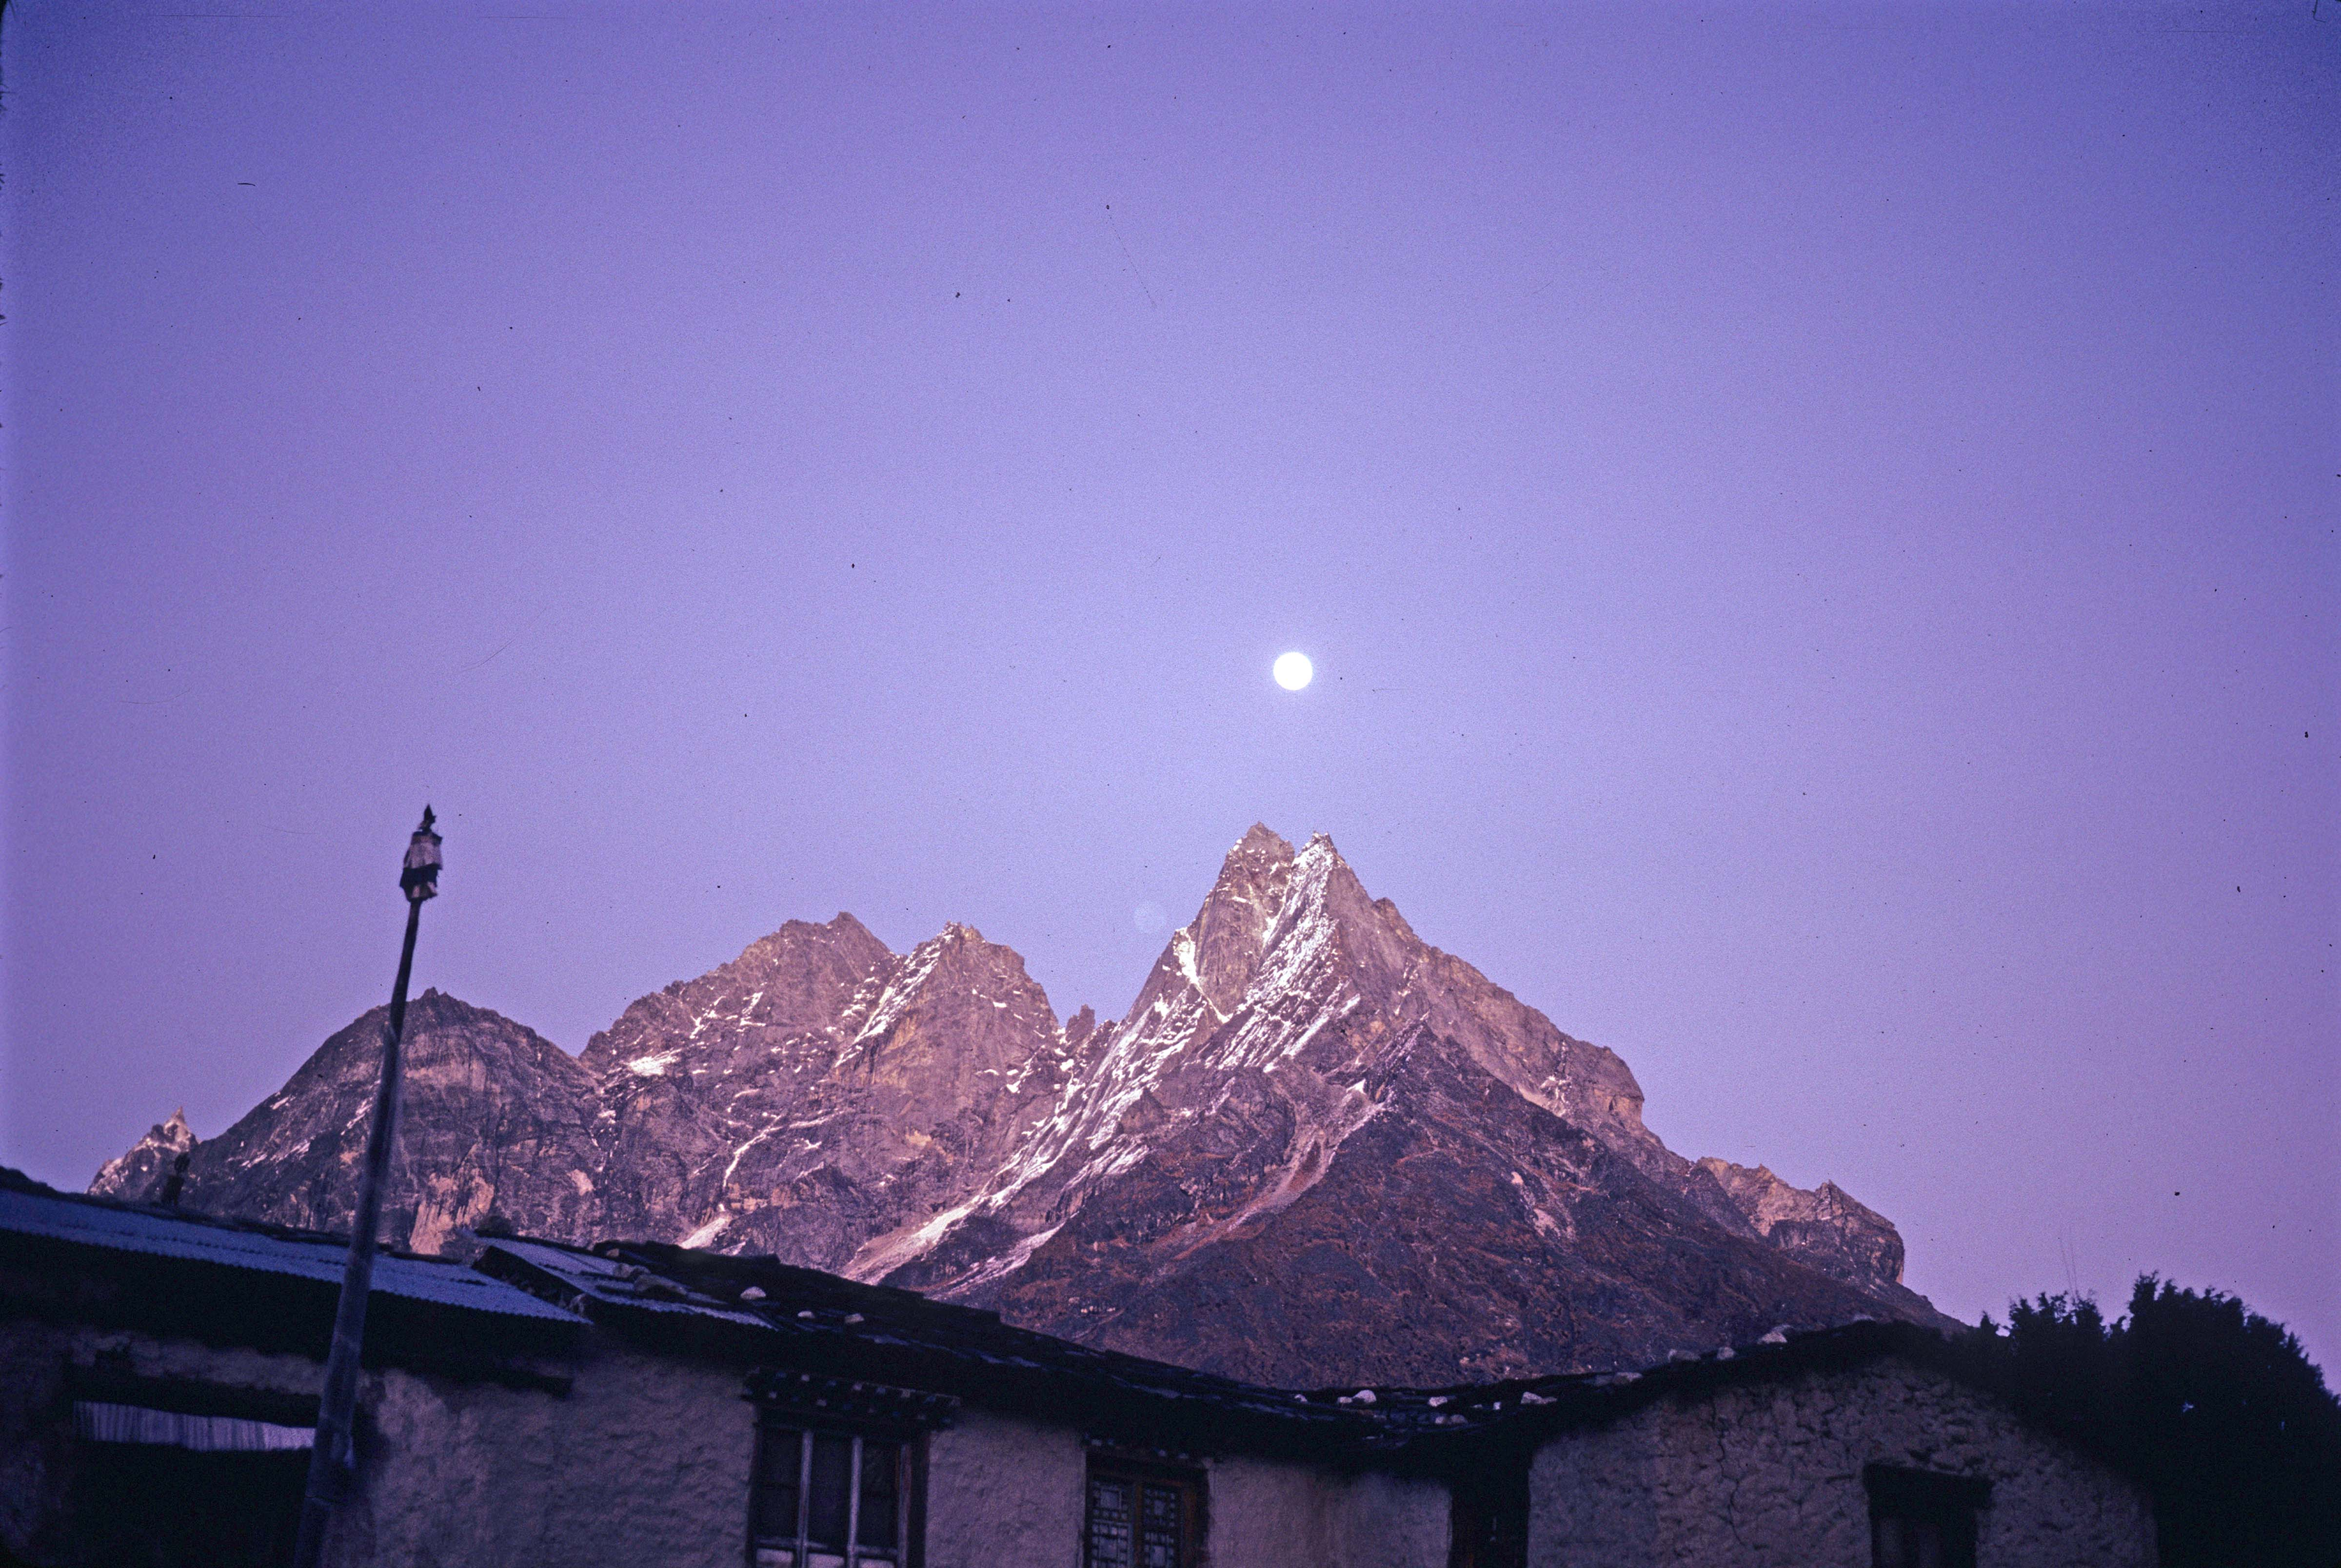 Guesthouse under Moonlight at Thyangboche